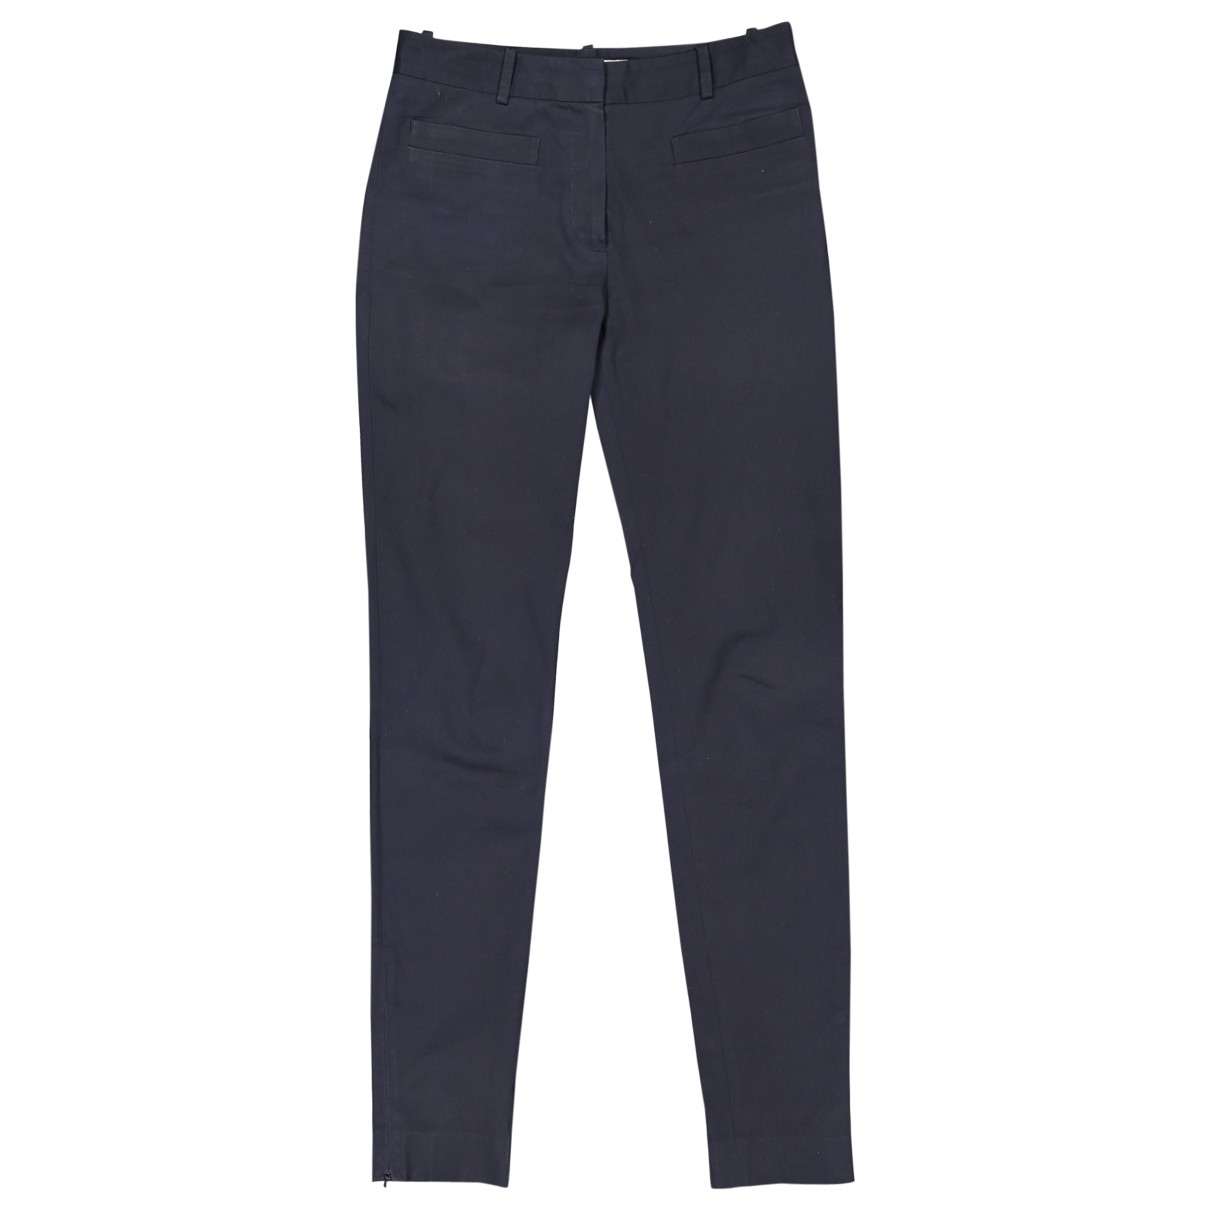 Dior \N Navy Cotton Trousers for Women 36 FR